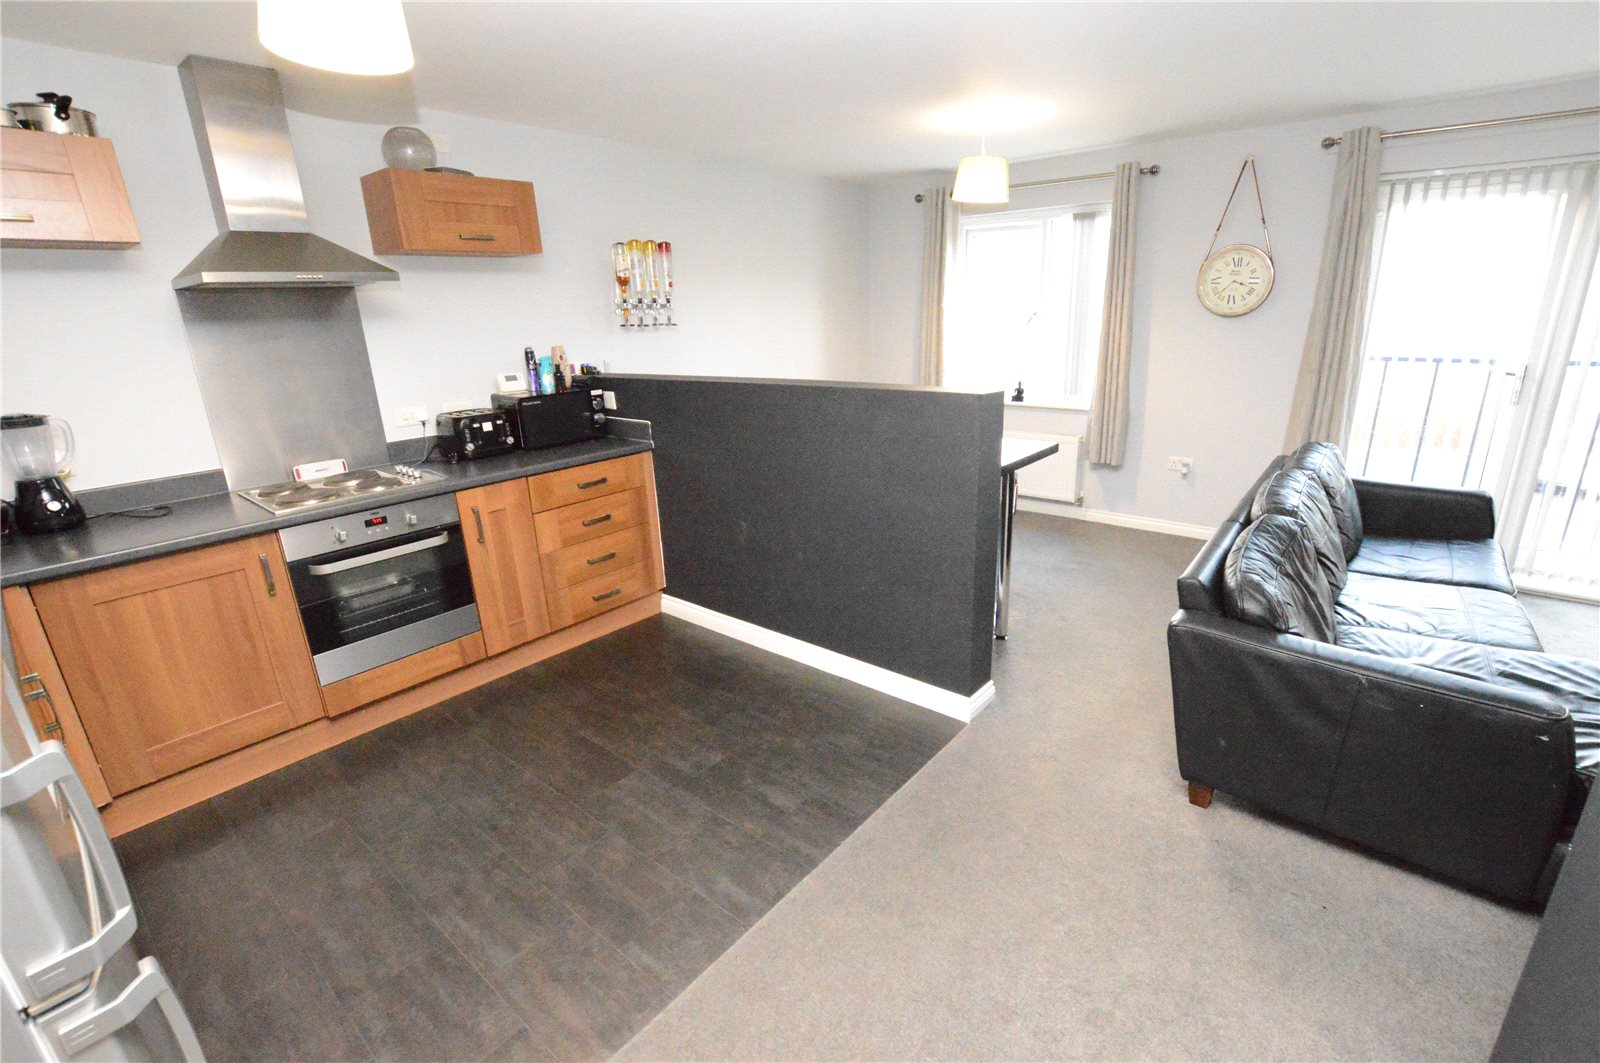 property for sale in Crossgates, interior open plan kitchen